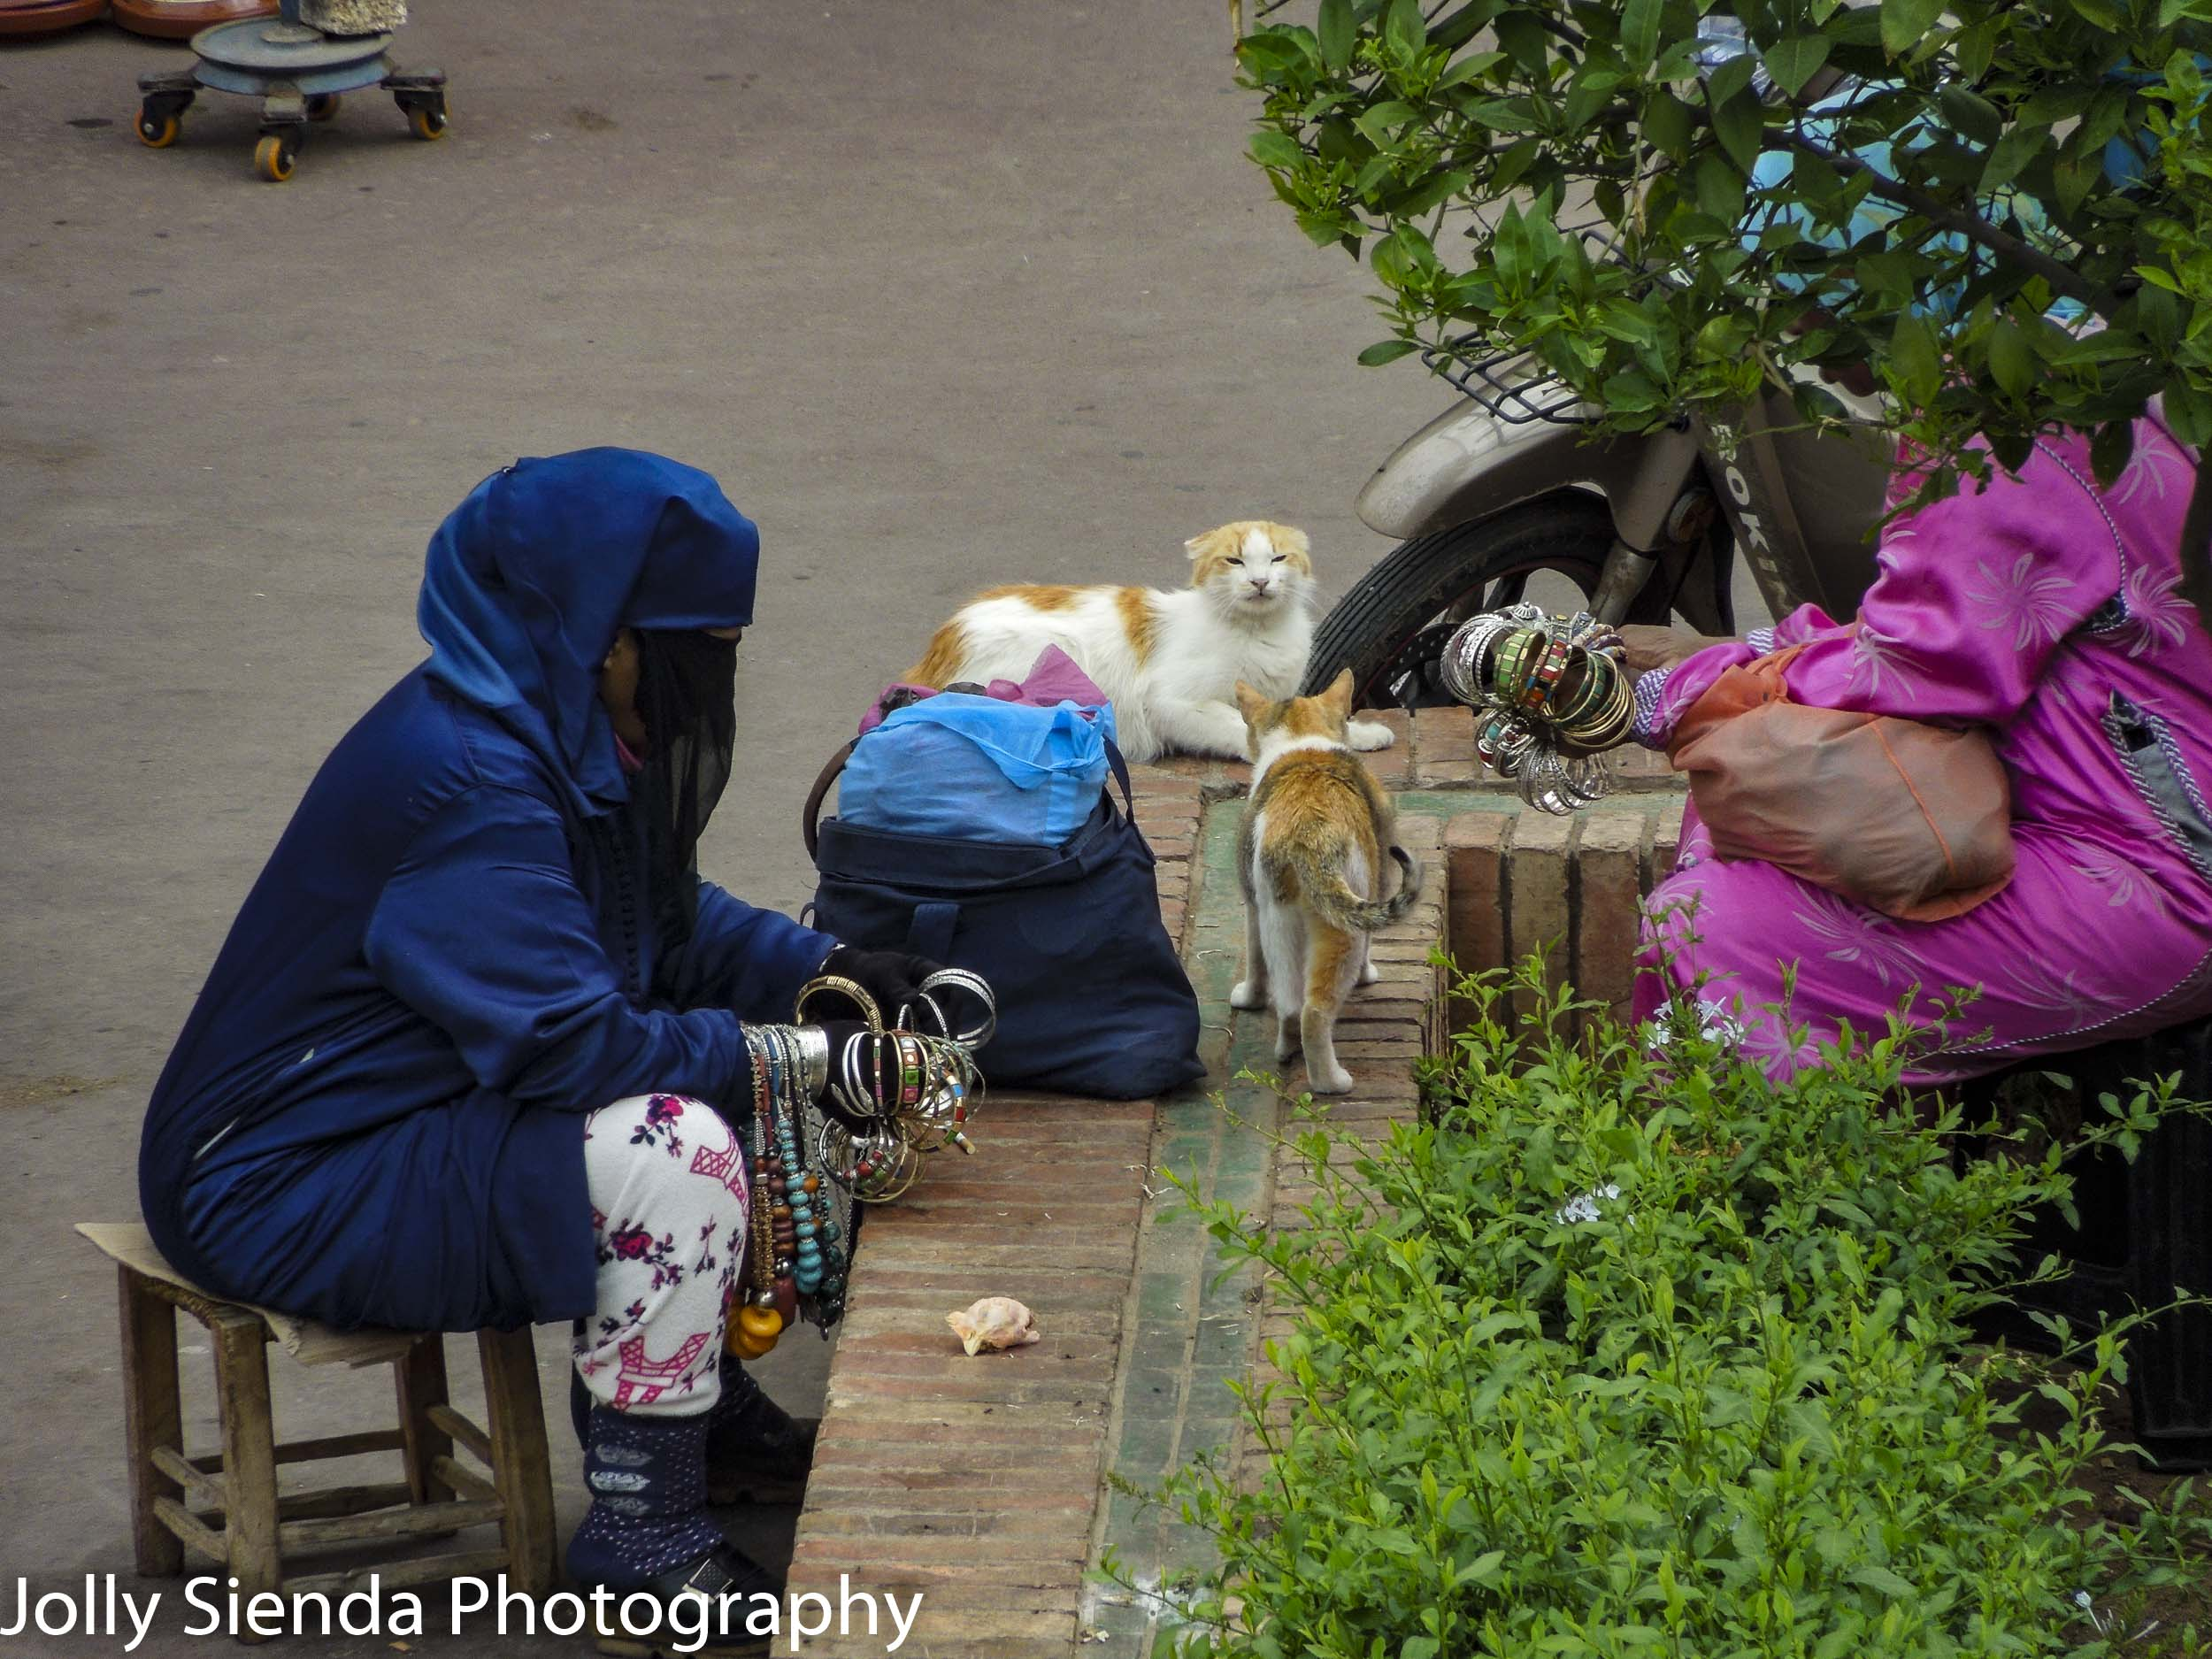 Cat fight and a veiled woman selling braclets